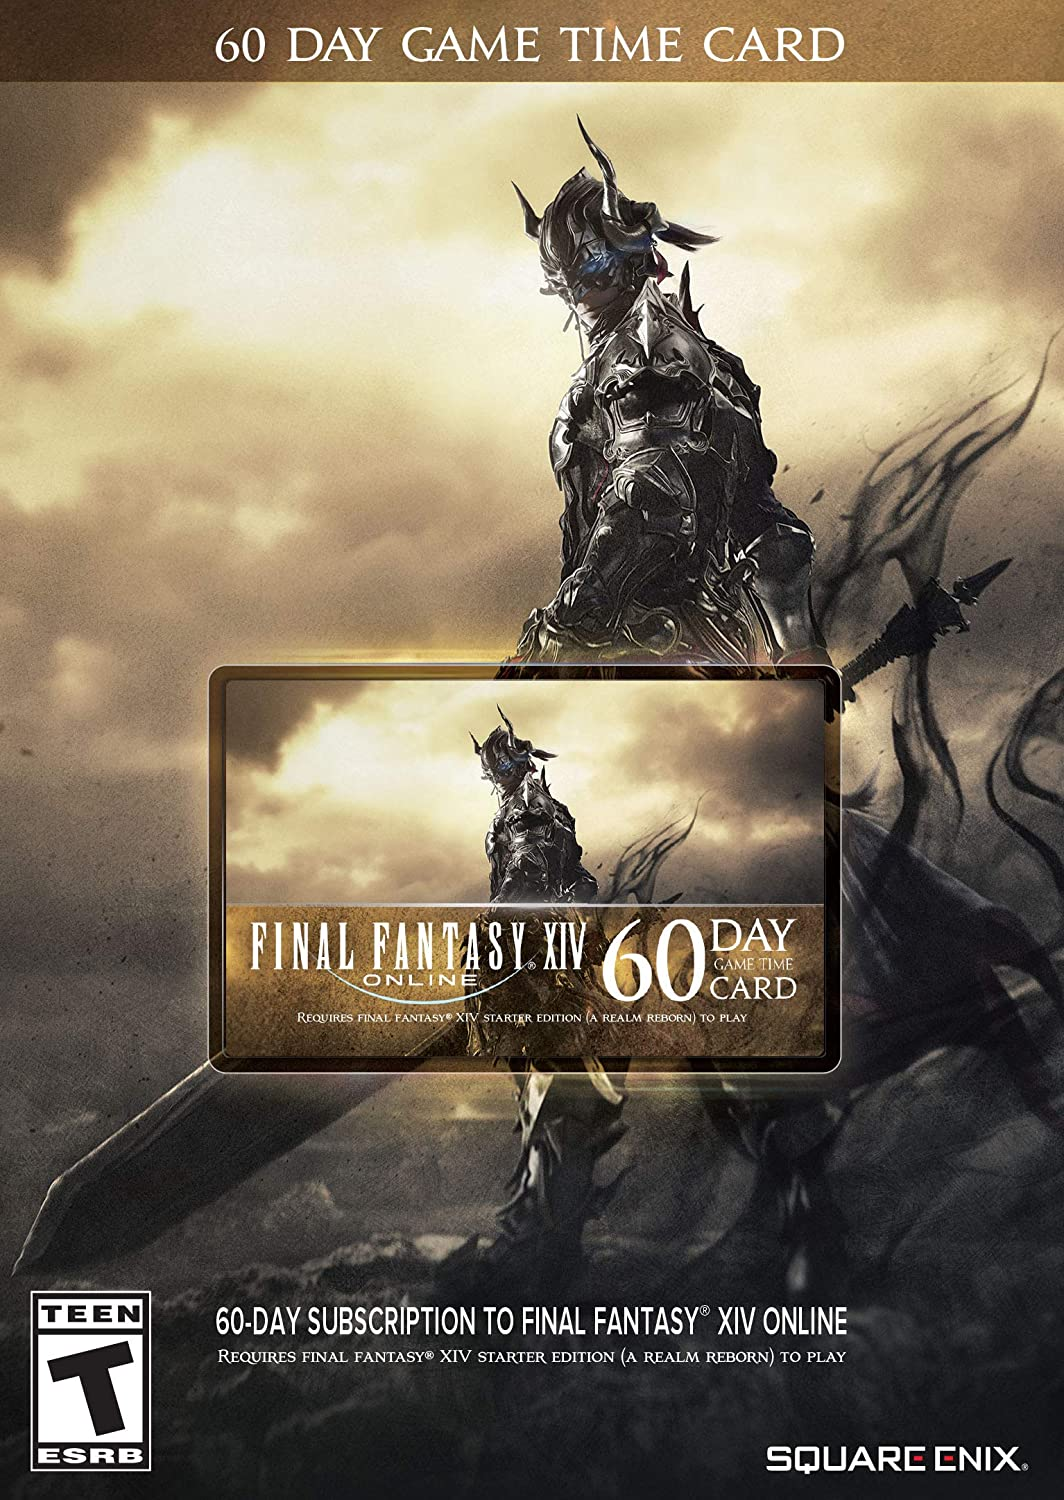 Amazon com: Final Fantasy XIV Online: 60 Day Time Card